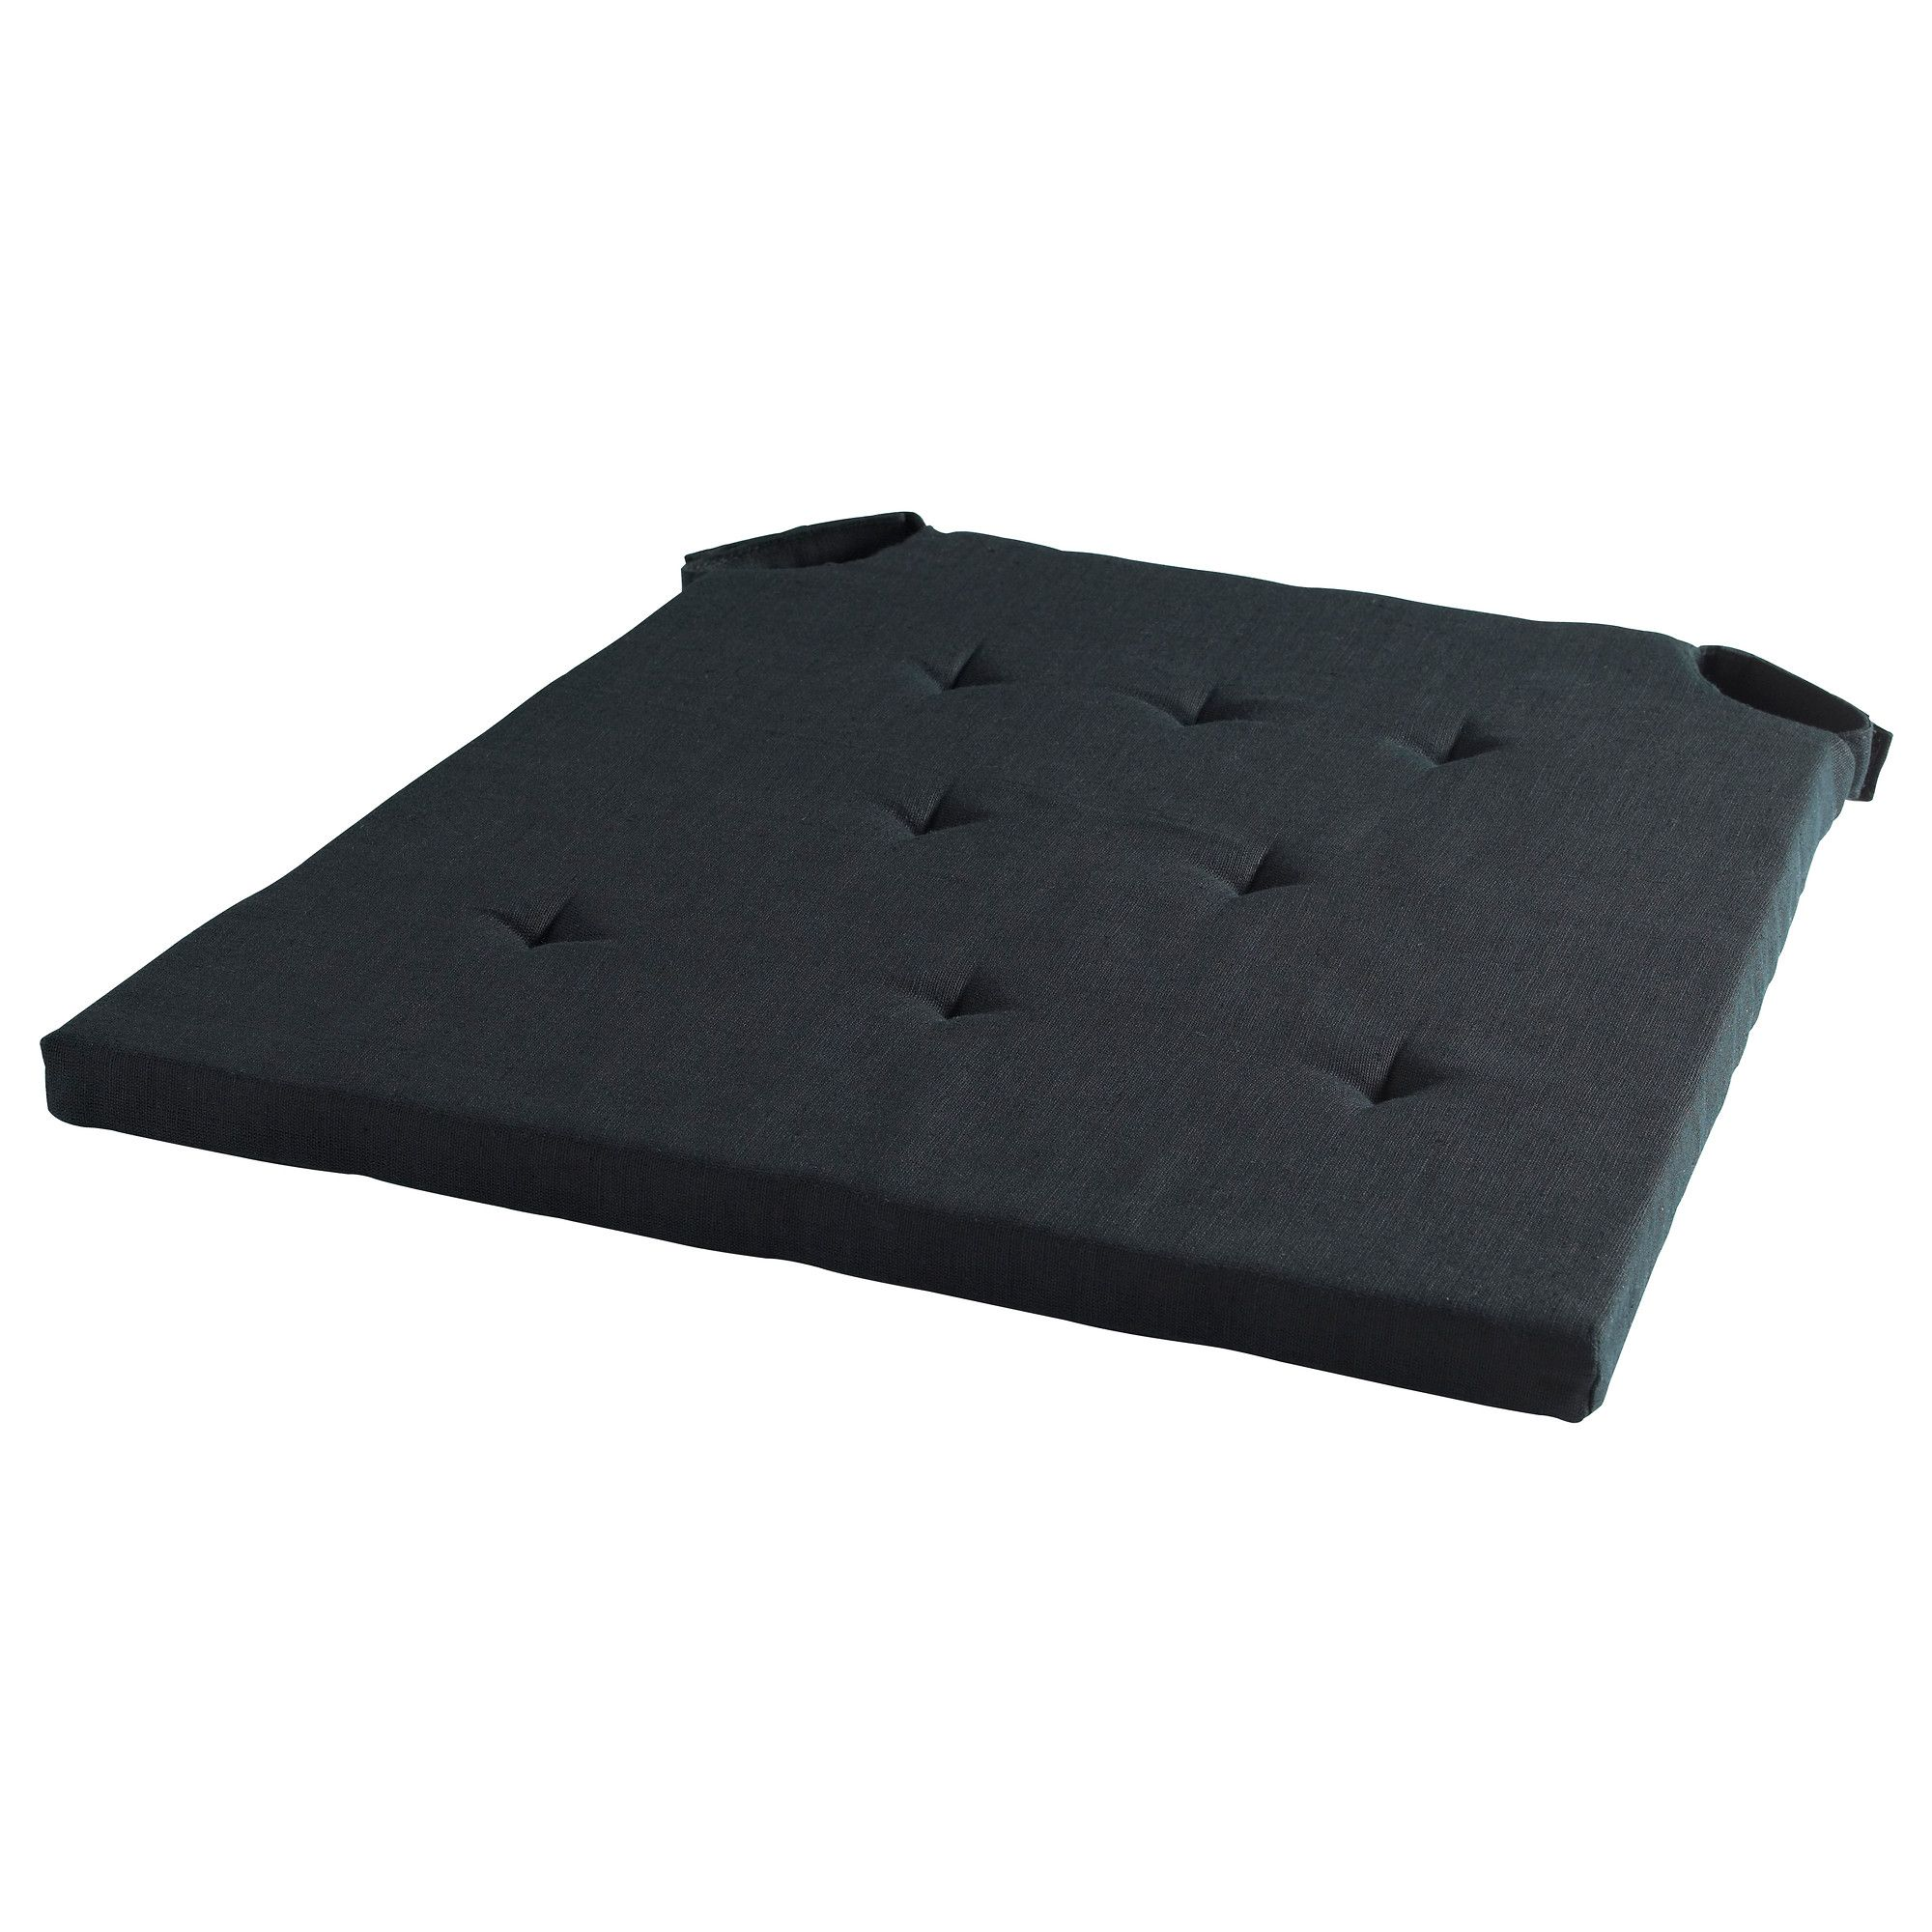 ADMETE Chair pad black IKEA $14 99 each x 8 for dining